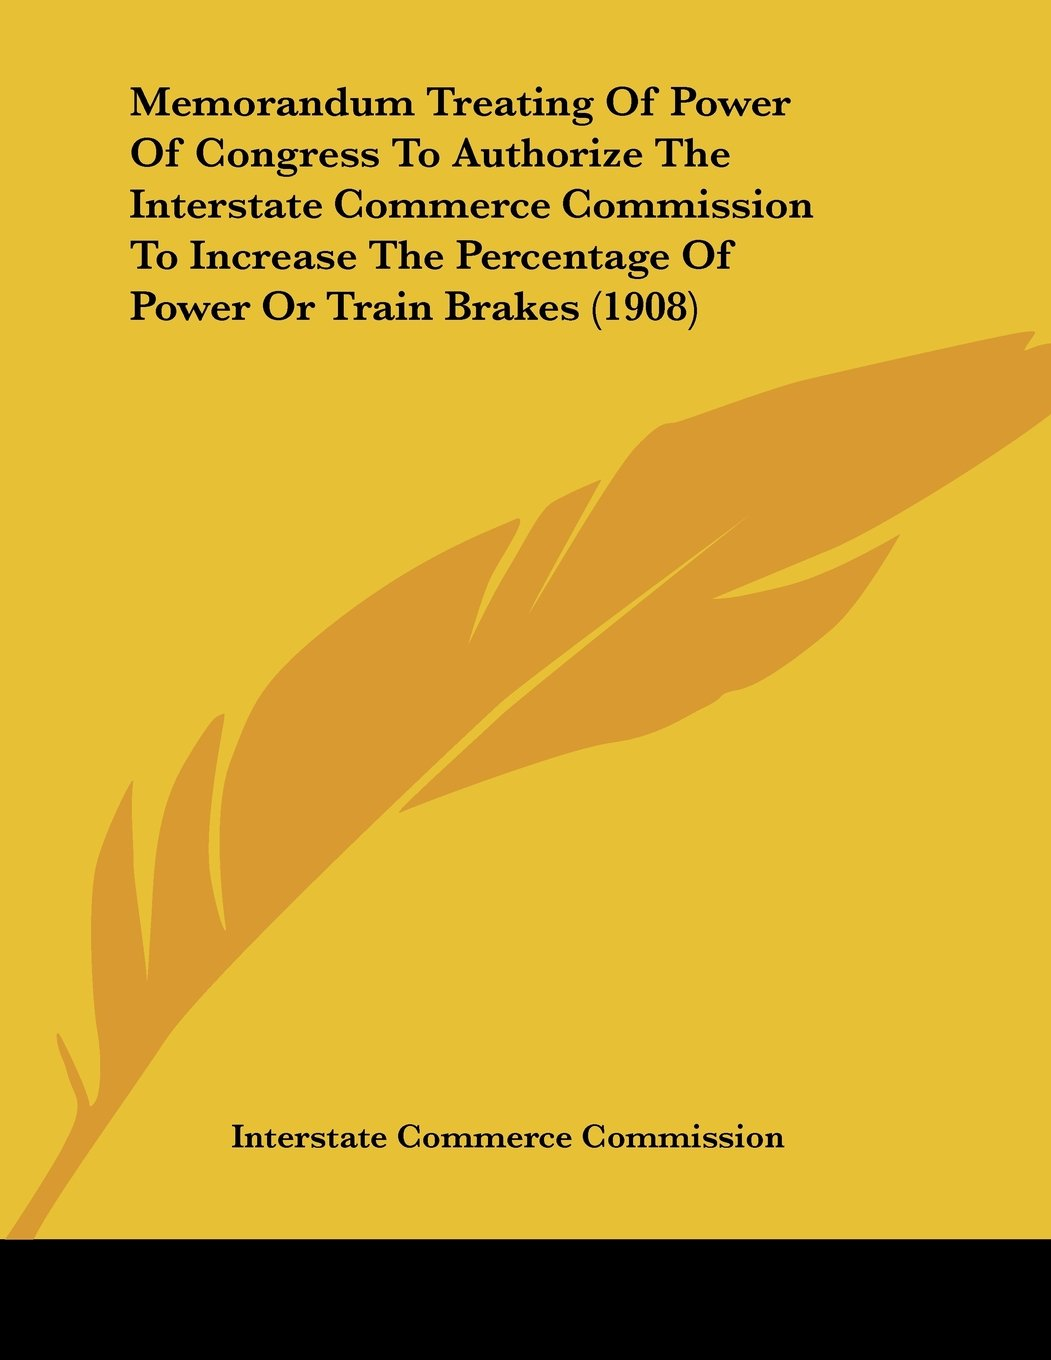 Memorandum Treating Of Power Of Congress To Authorize The Interstate Commerce Commission To Increase The Percentage Of Power Or Train Brakes (1908) PDF